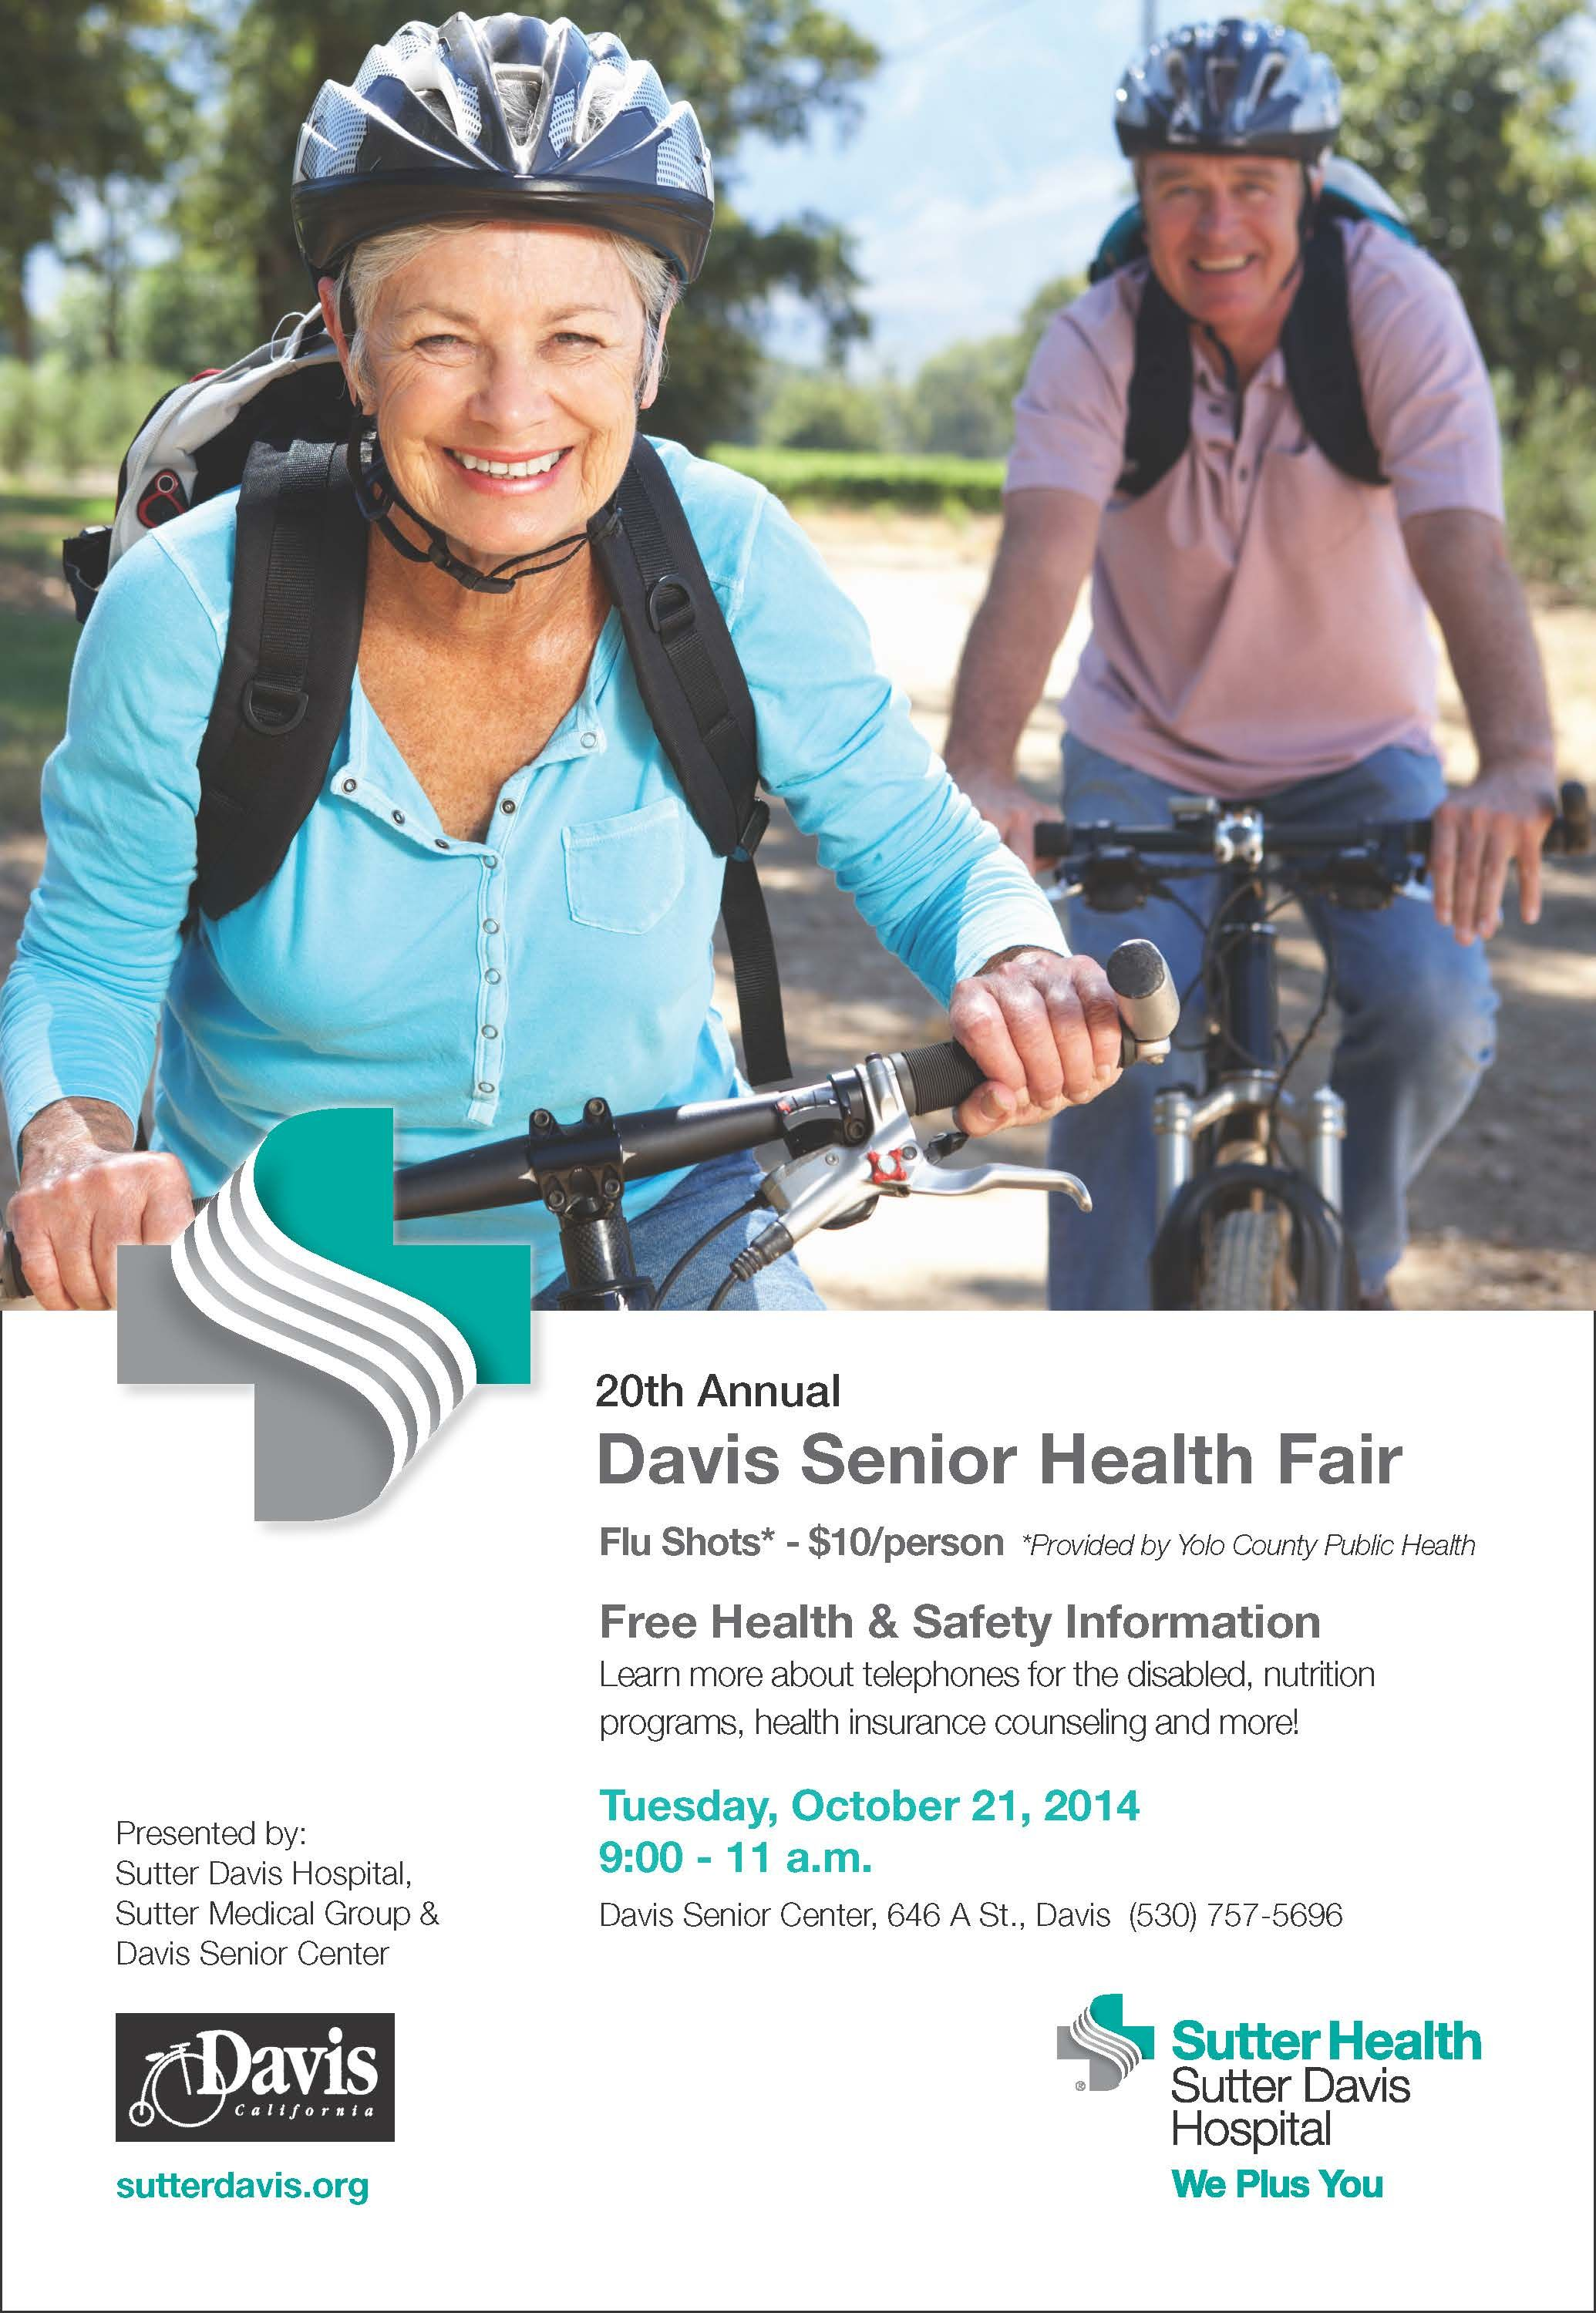 Sutter Davis Hospital is proud to partner with the Davis